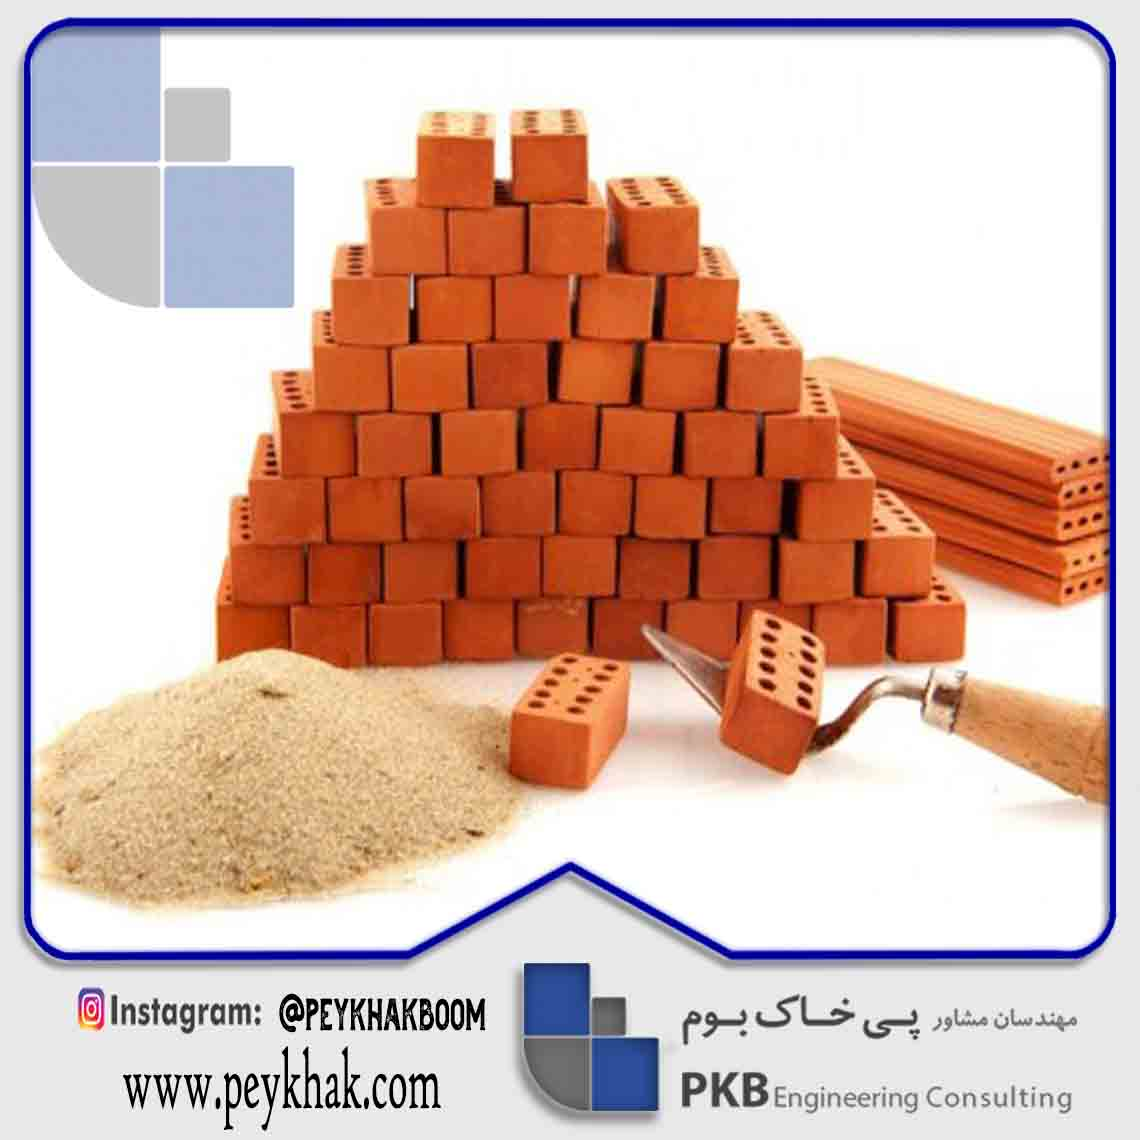 Introduction to all types of building materials